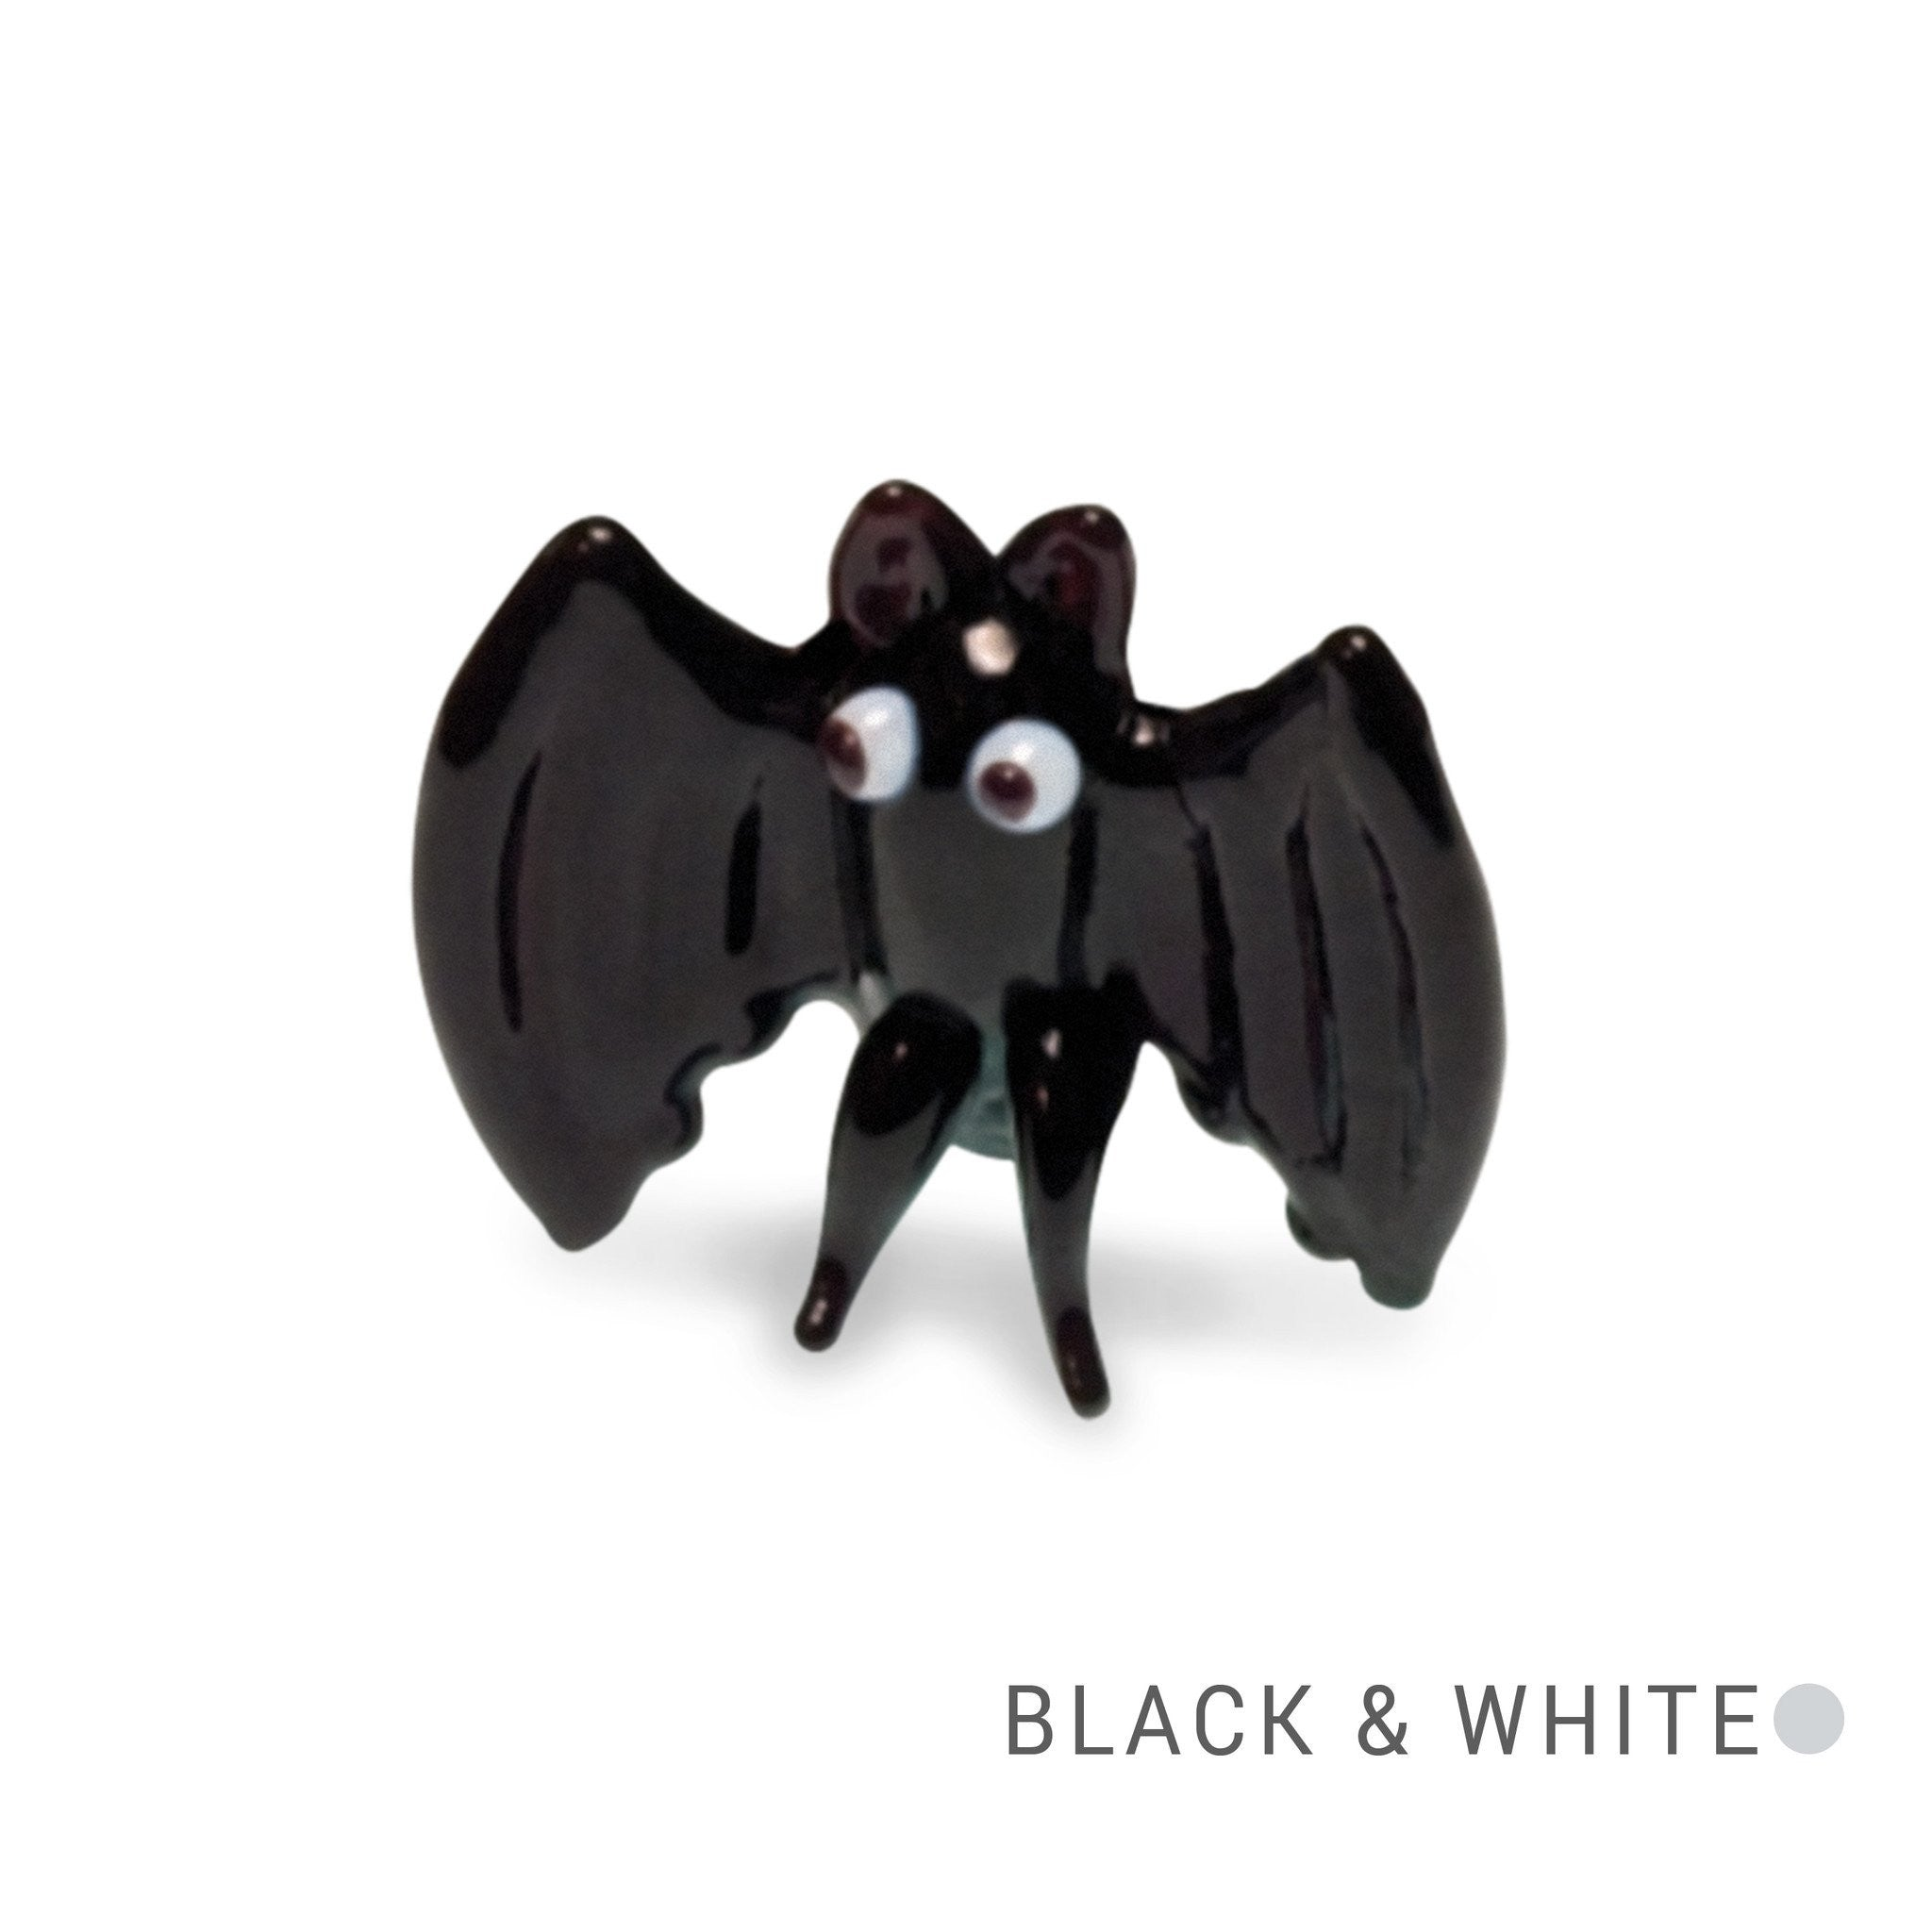 Boo the Bat (in Tynies Collector's Frame) Miniature glass figurines